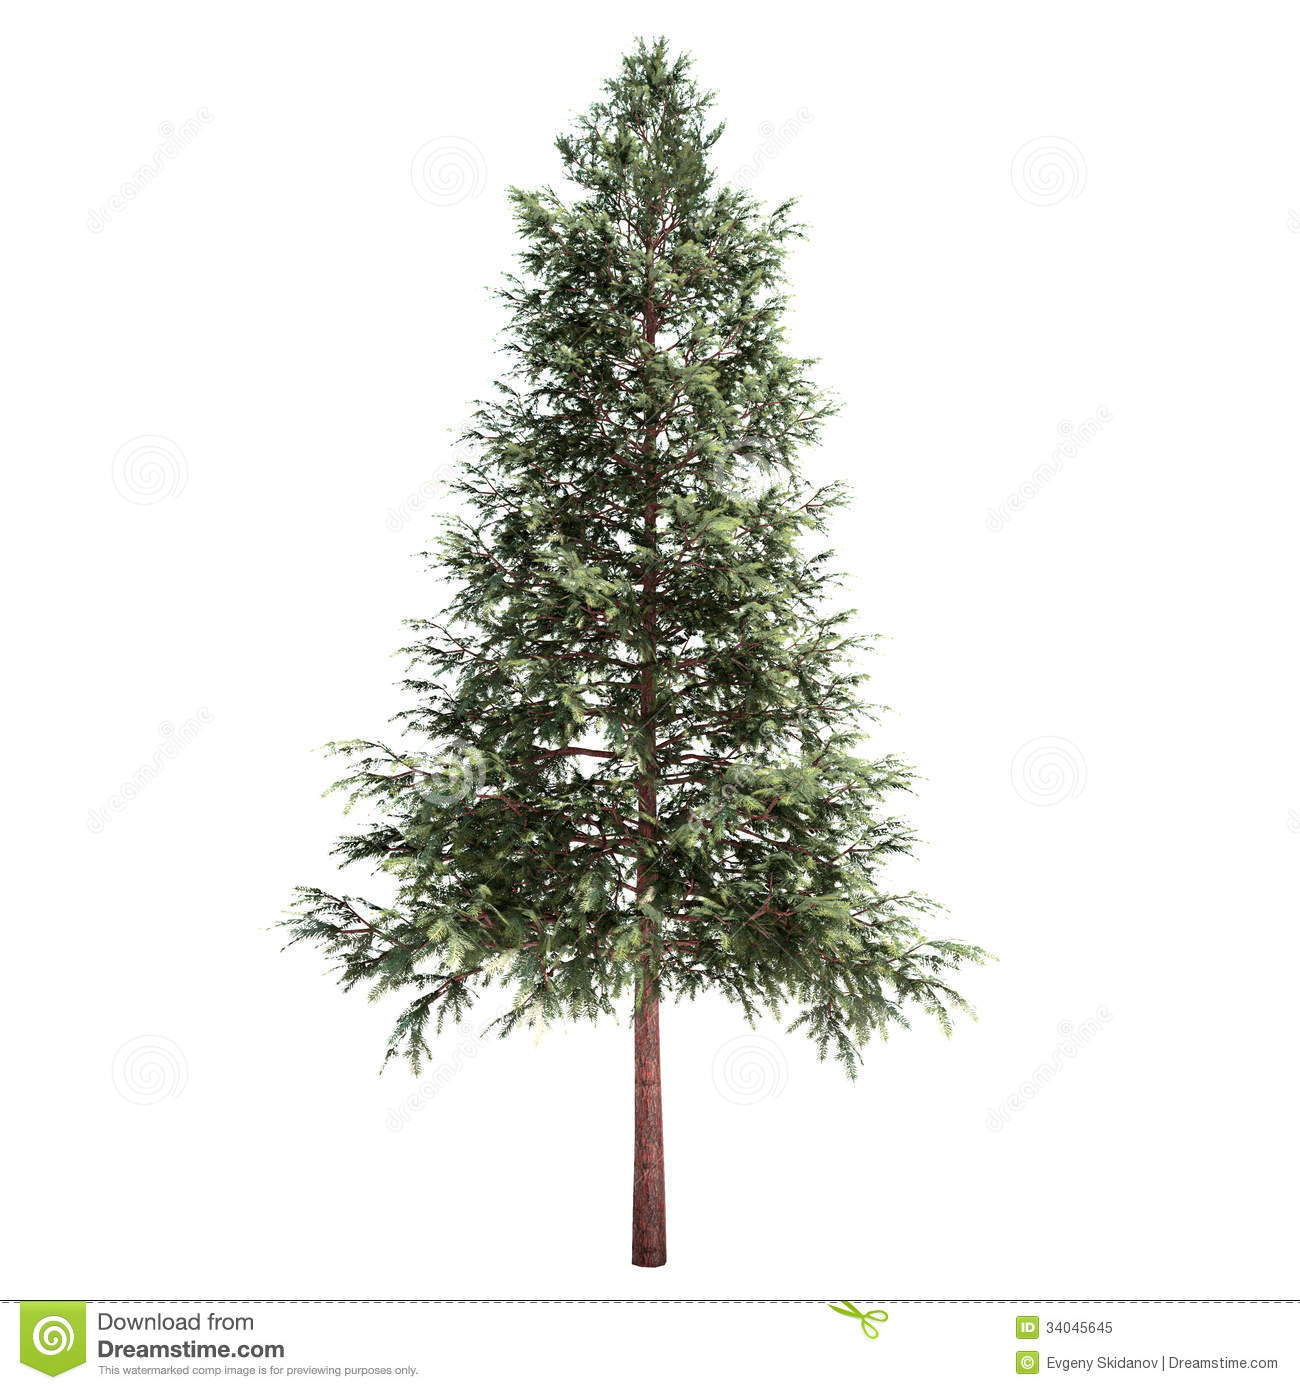 Norway Spruce Tree Isolated White besides Solstice Song likewise Blueberry Tree Stock Image besides Martha Christmas Polarbear Hd furthermore Poplar Trees In Natural Deciduous Forest Stock Photo. on green tree clip art